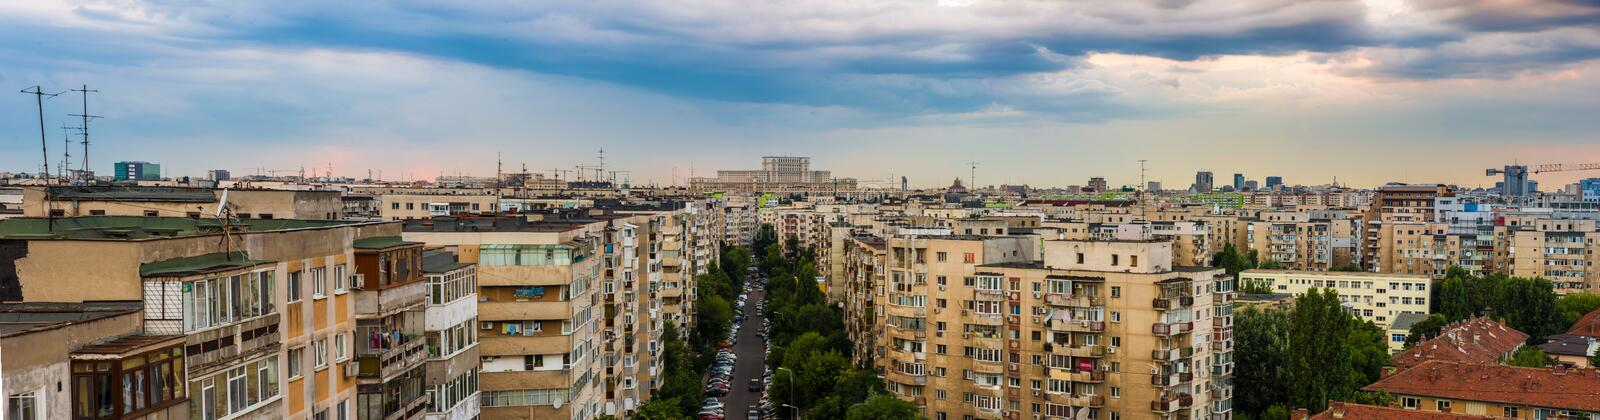 View of Bucharest stock images